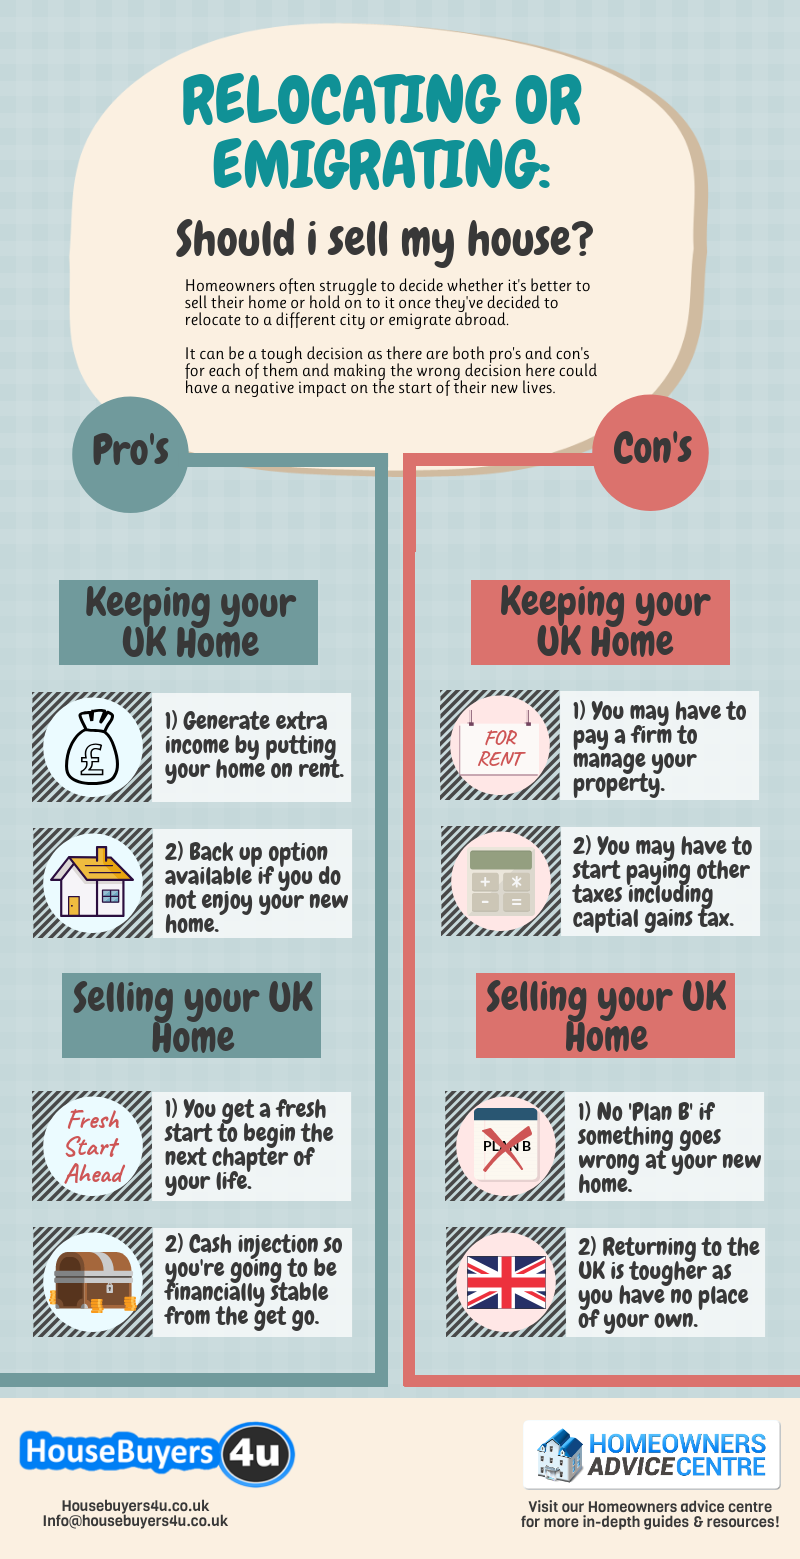 Relocating or Emigrating: Should I Sell My House? Infographic Image